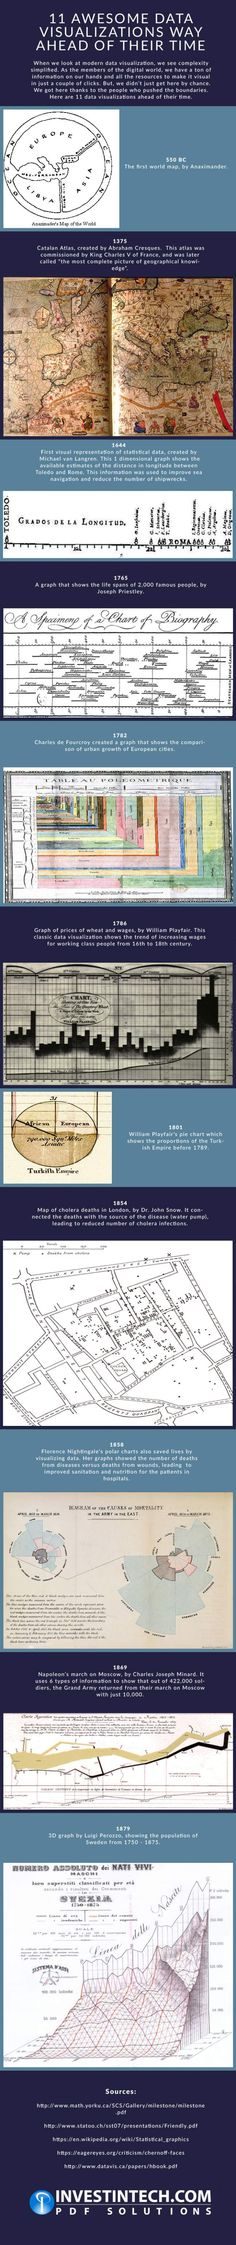 This infographic highlights eleven unique data visualizations from across different—yet significant, periods in history.